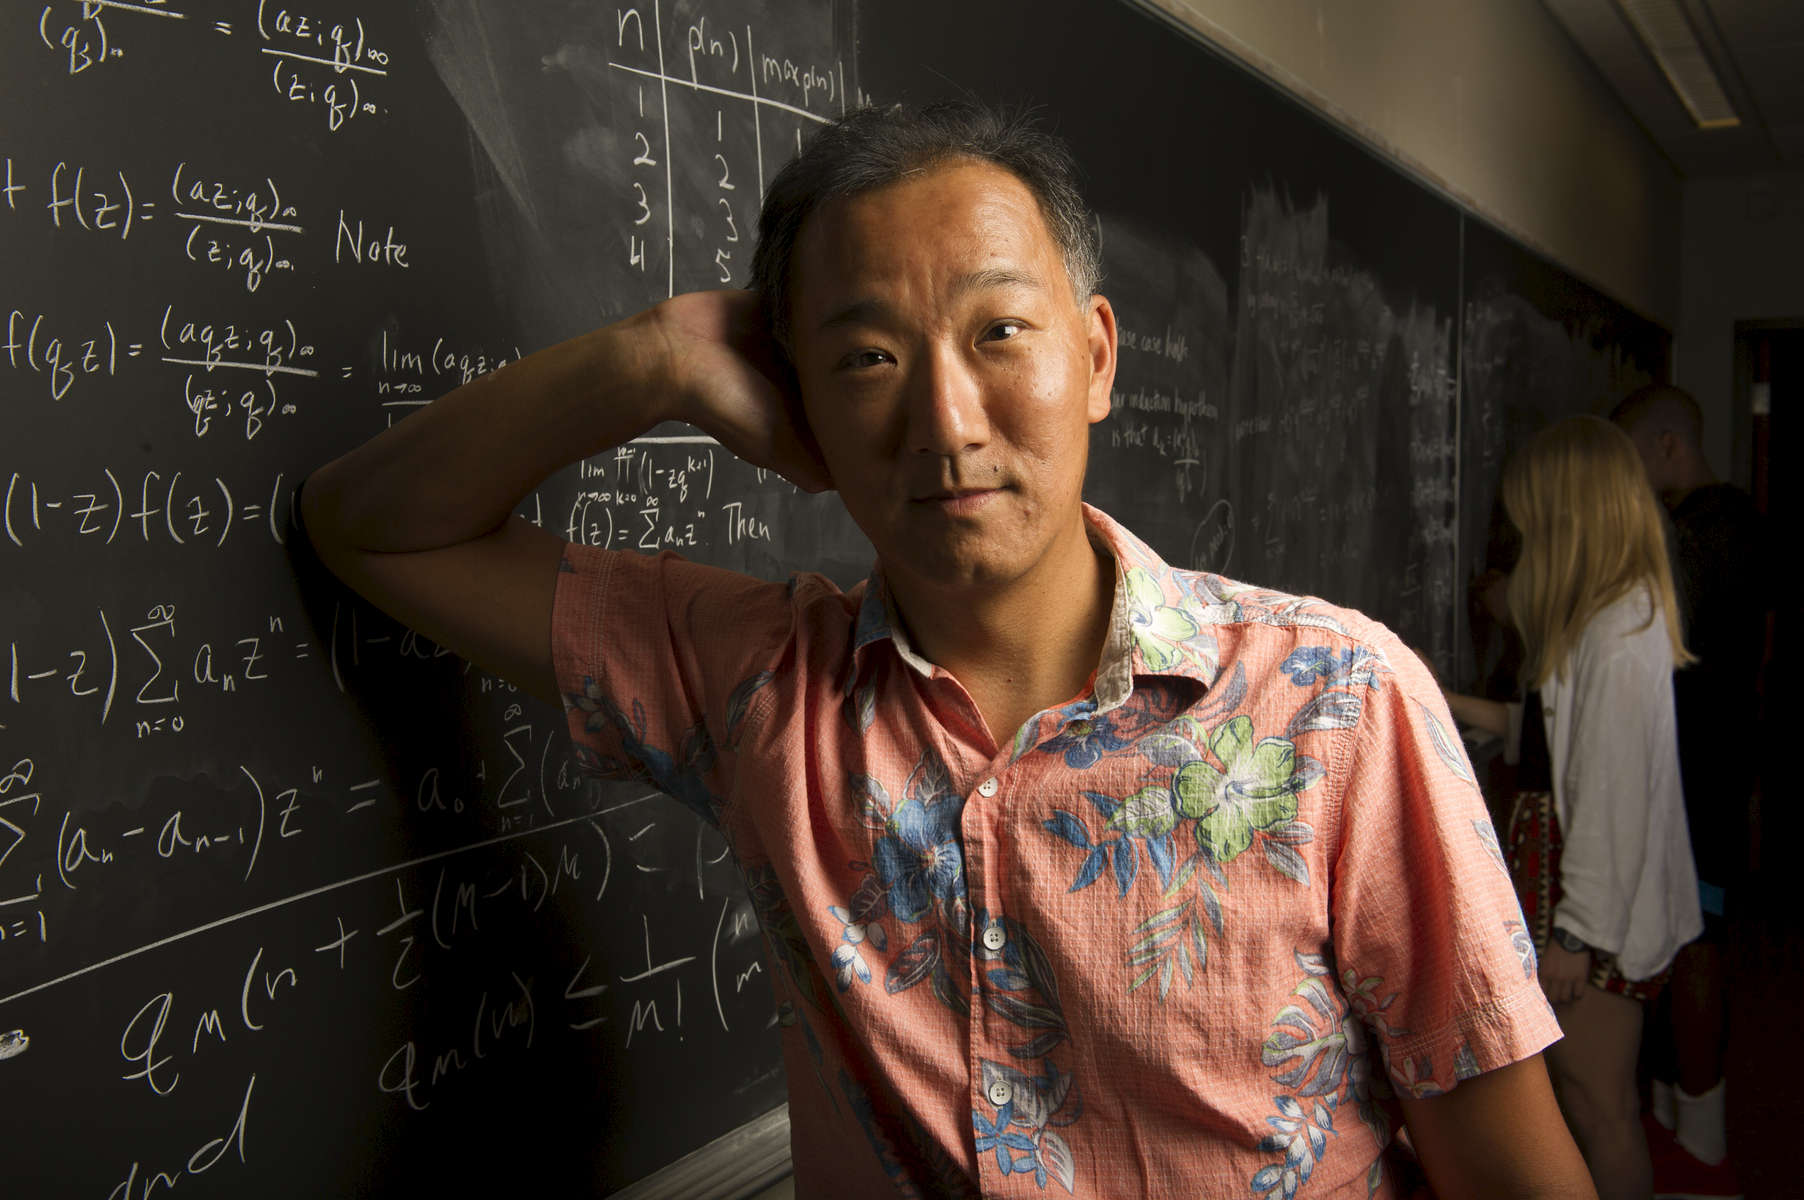 Ken Ono, Mathematics Professor at Emory University, is the author of {quote}My Search for Ramanujan,{quote} is a Japanese-American mathematician who specializes in number theory, especially in integer partitions, modular forms, and the fields of interest to Srinivasa Ramanujan.